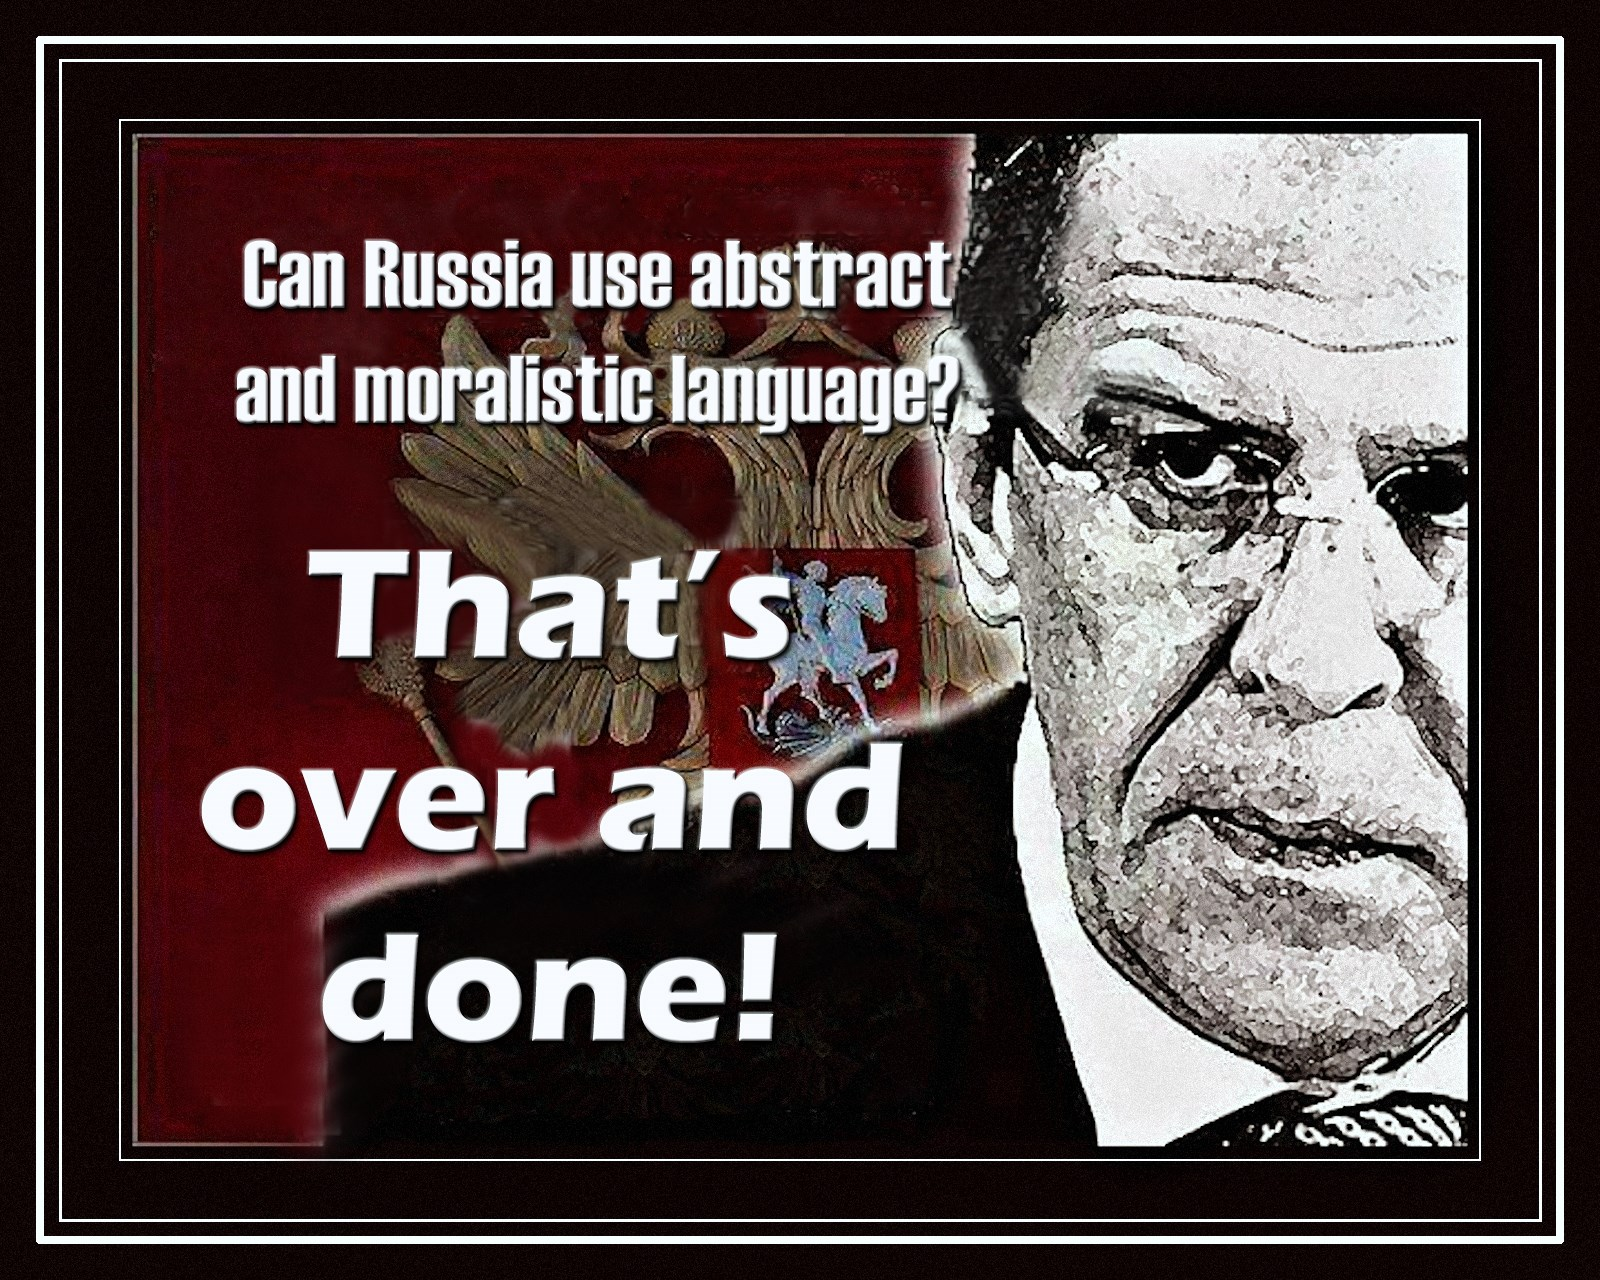 00 Lavrov. Can Russia use abstract and moralistic language. 27.03.15